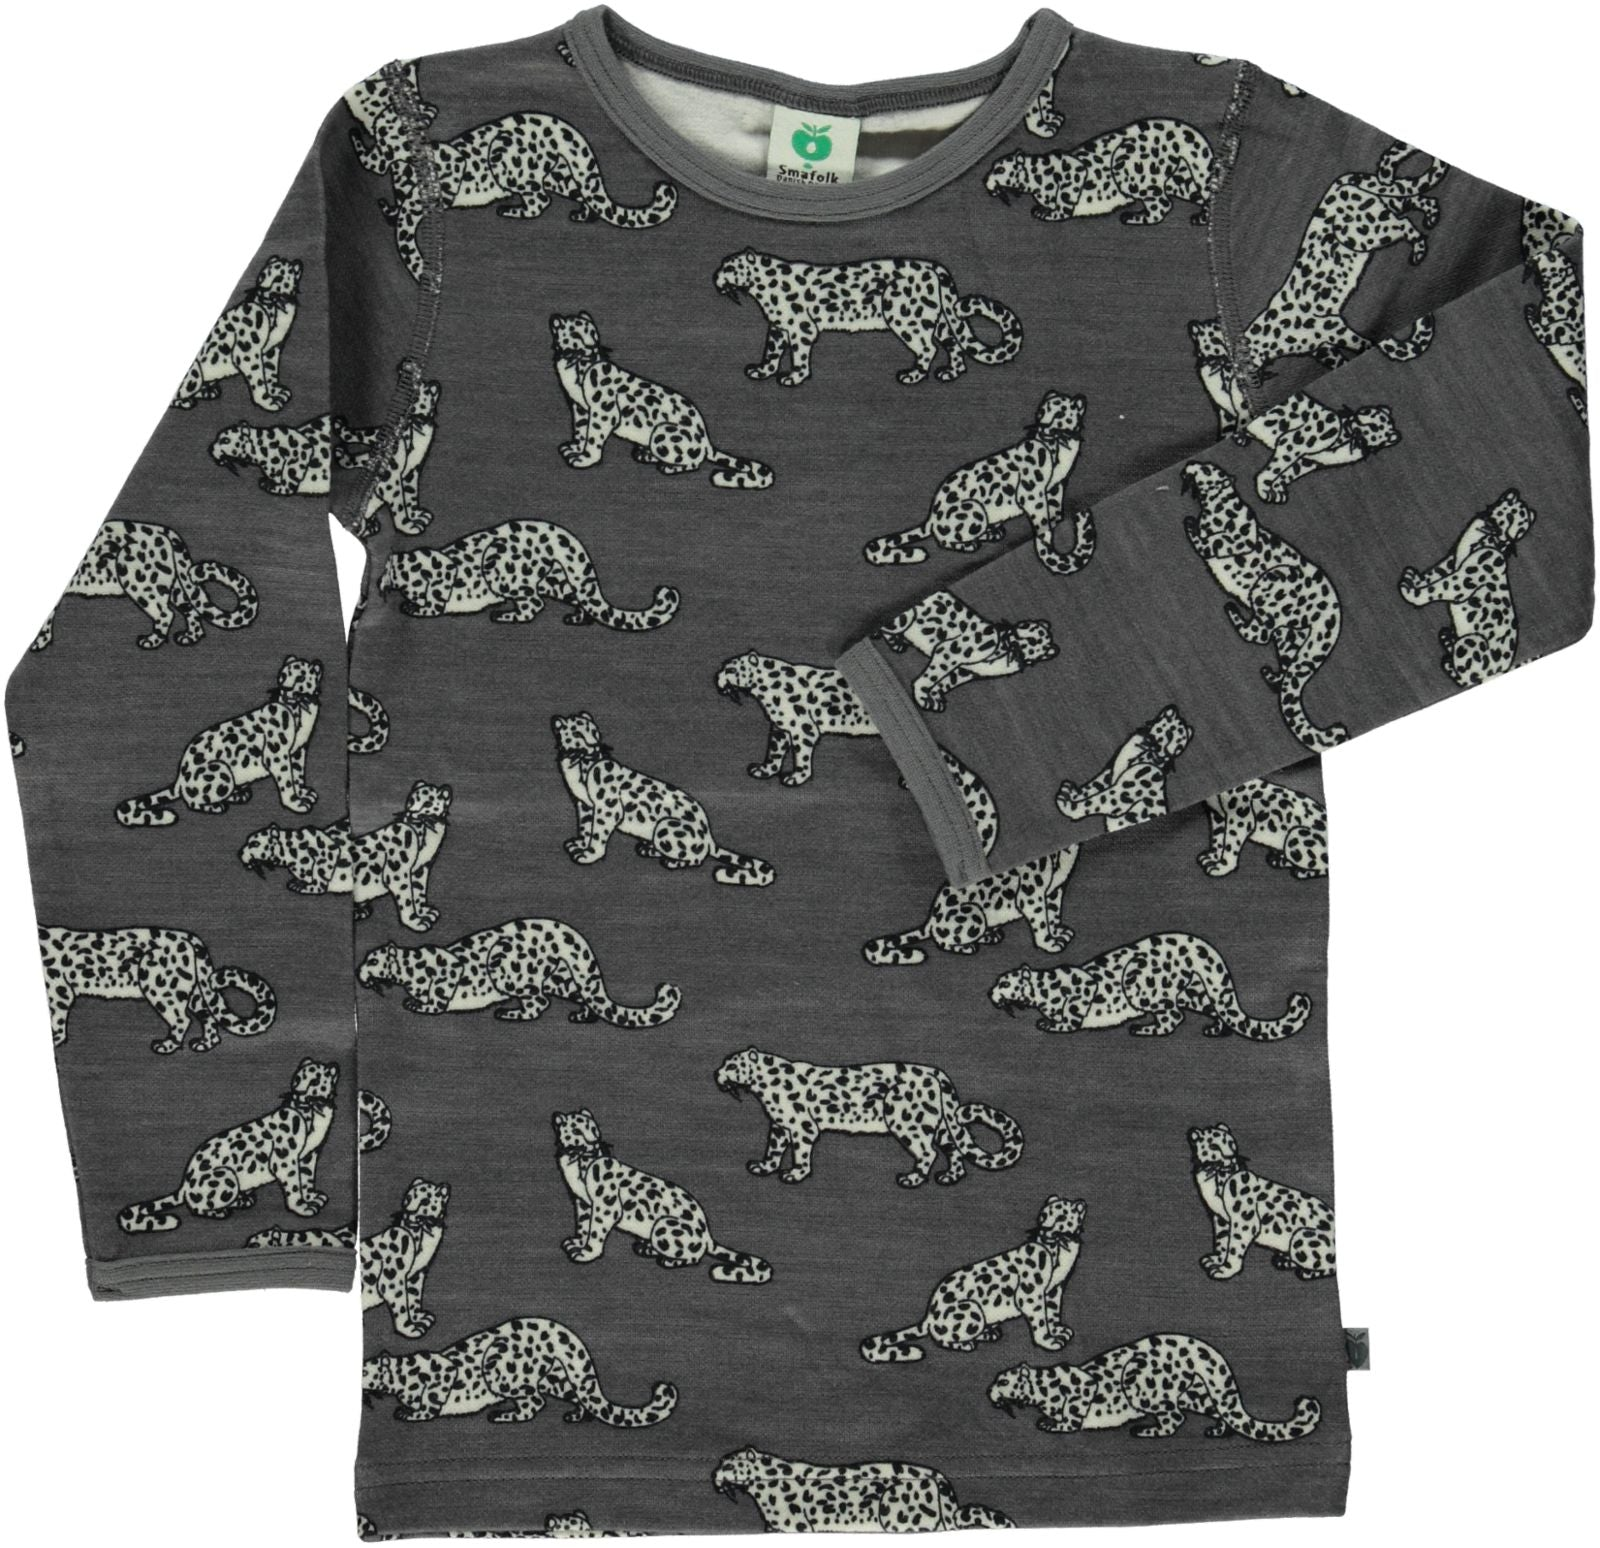 Smafolk Wool Mix T-Shirt - Leopard